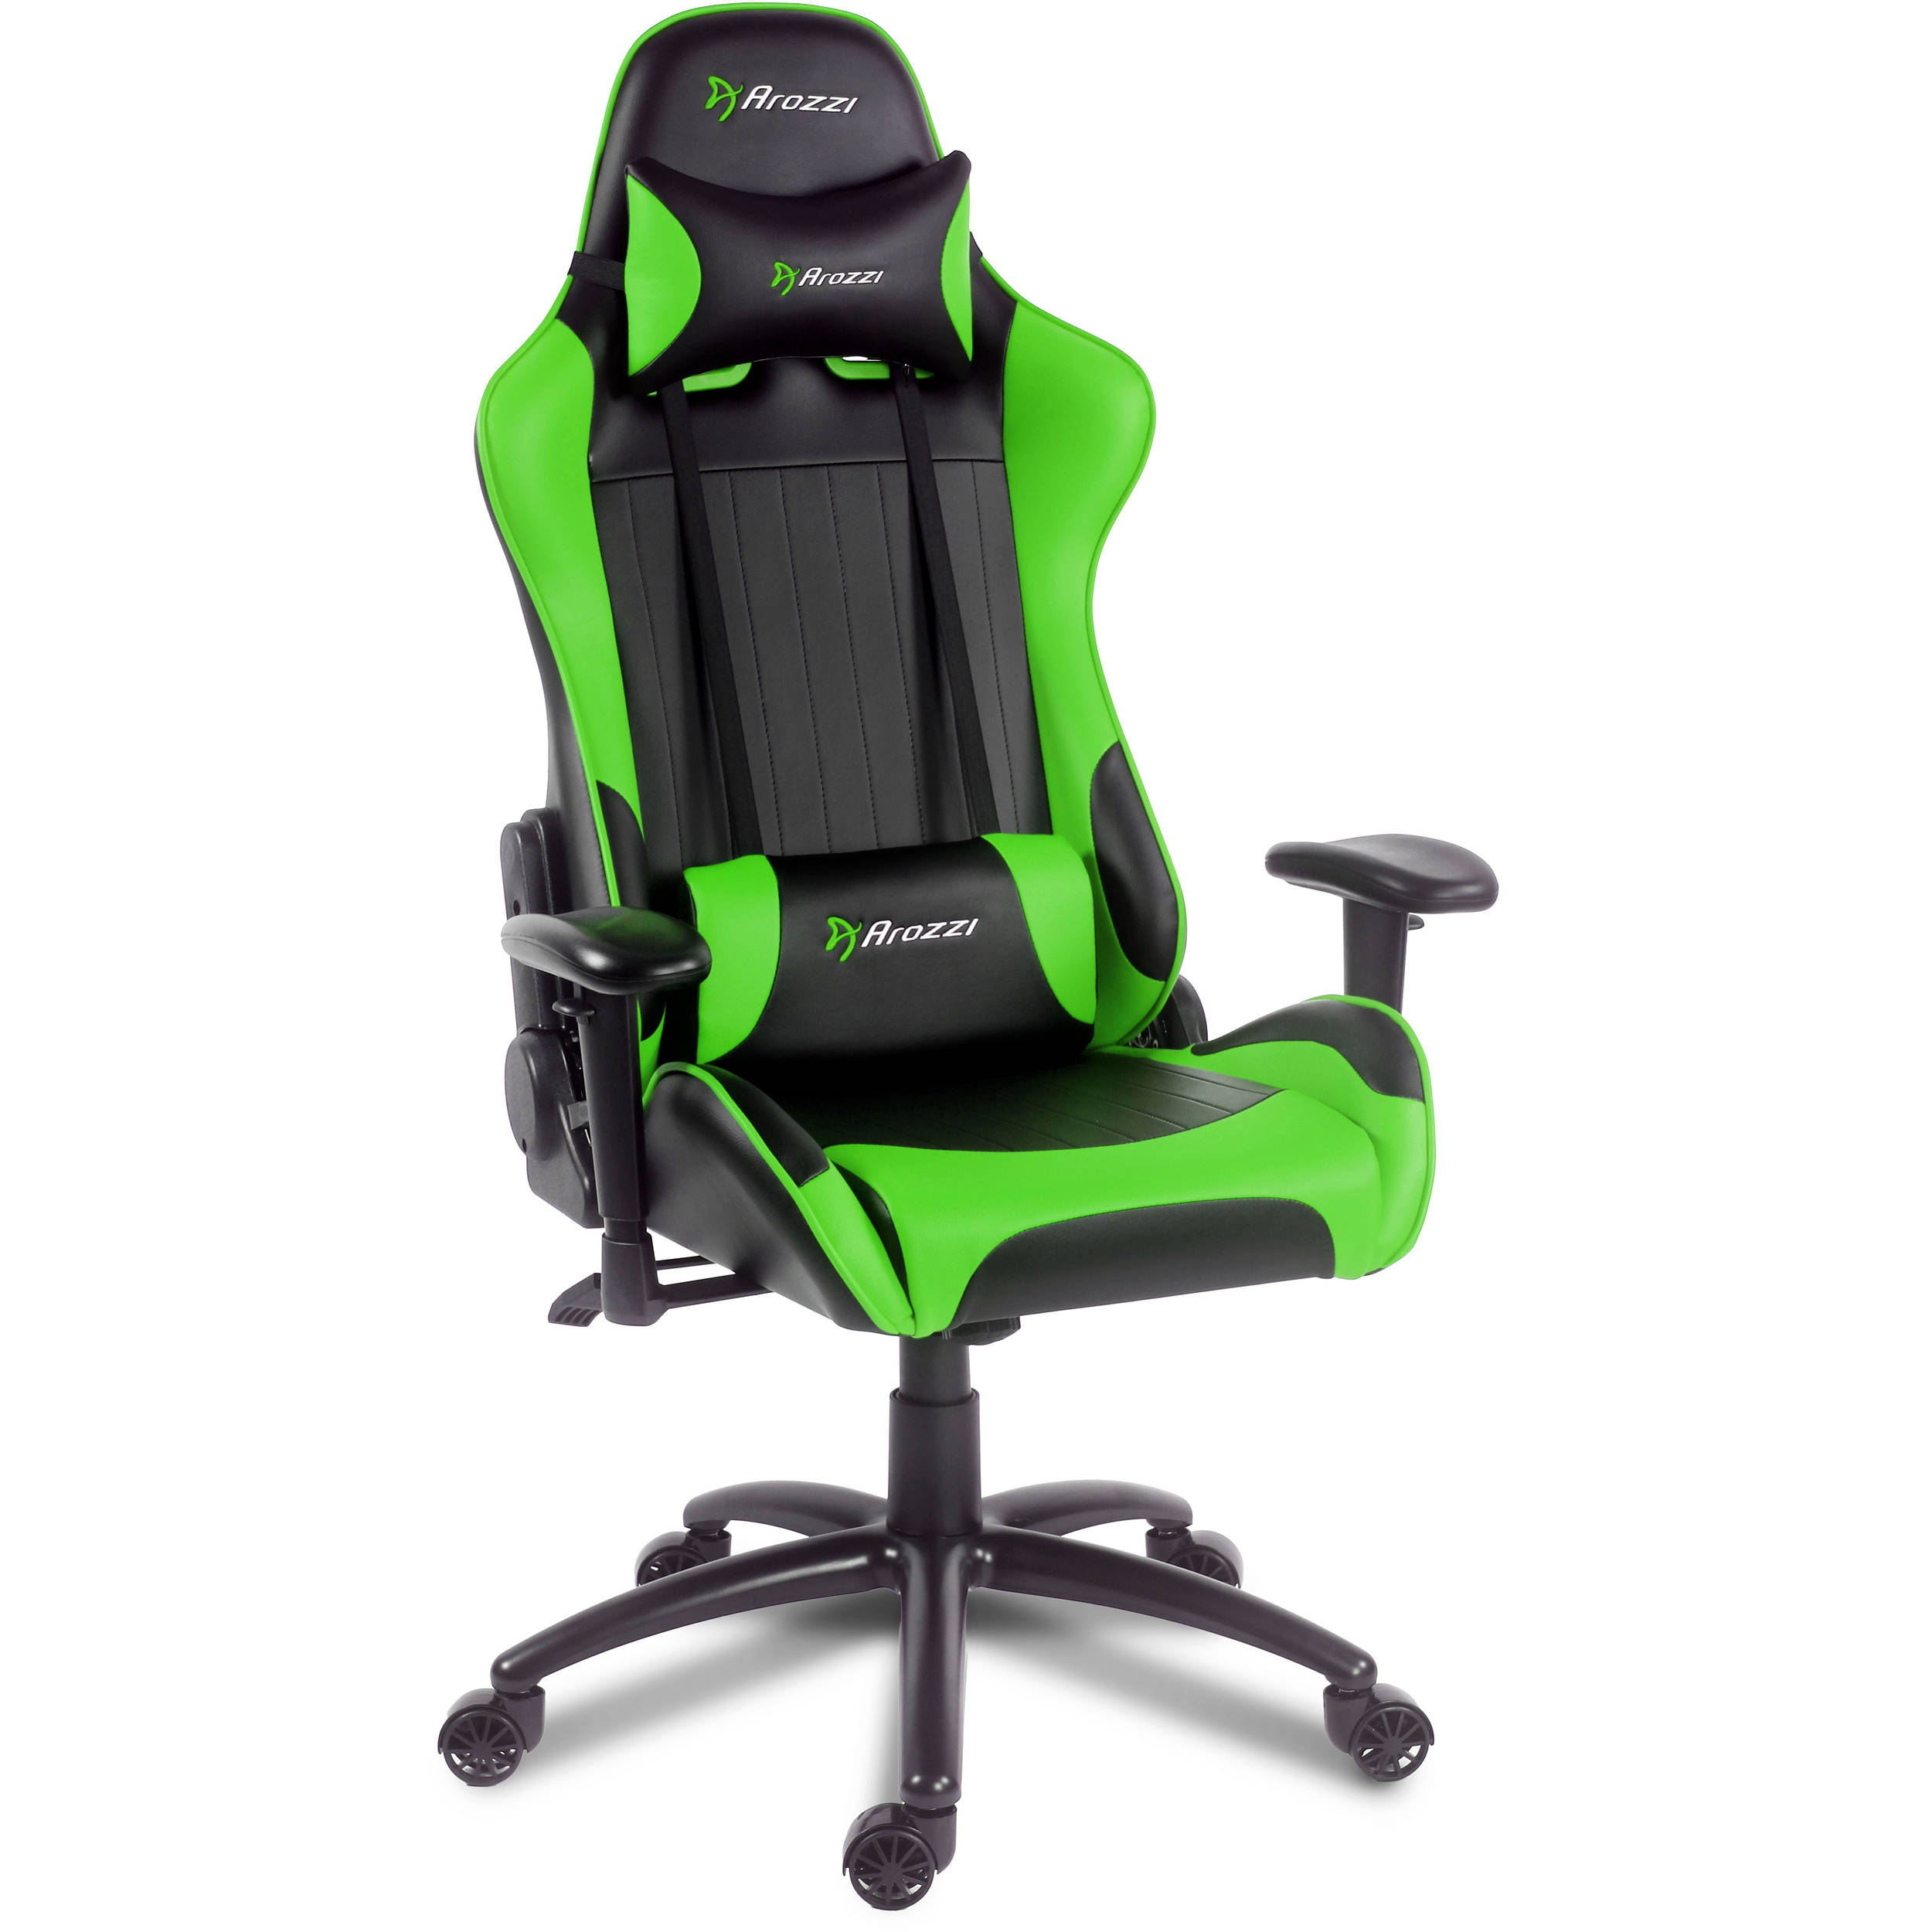 best office gamer full furniture home collection size of relaxing with wheels gaming computer black for pc chairs chair design color ideas